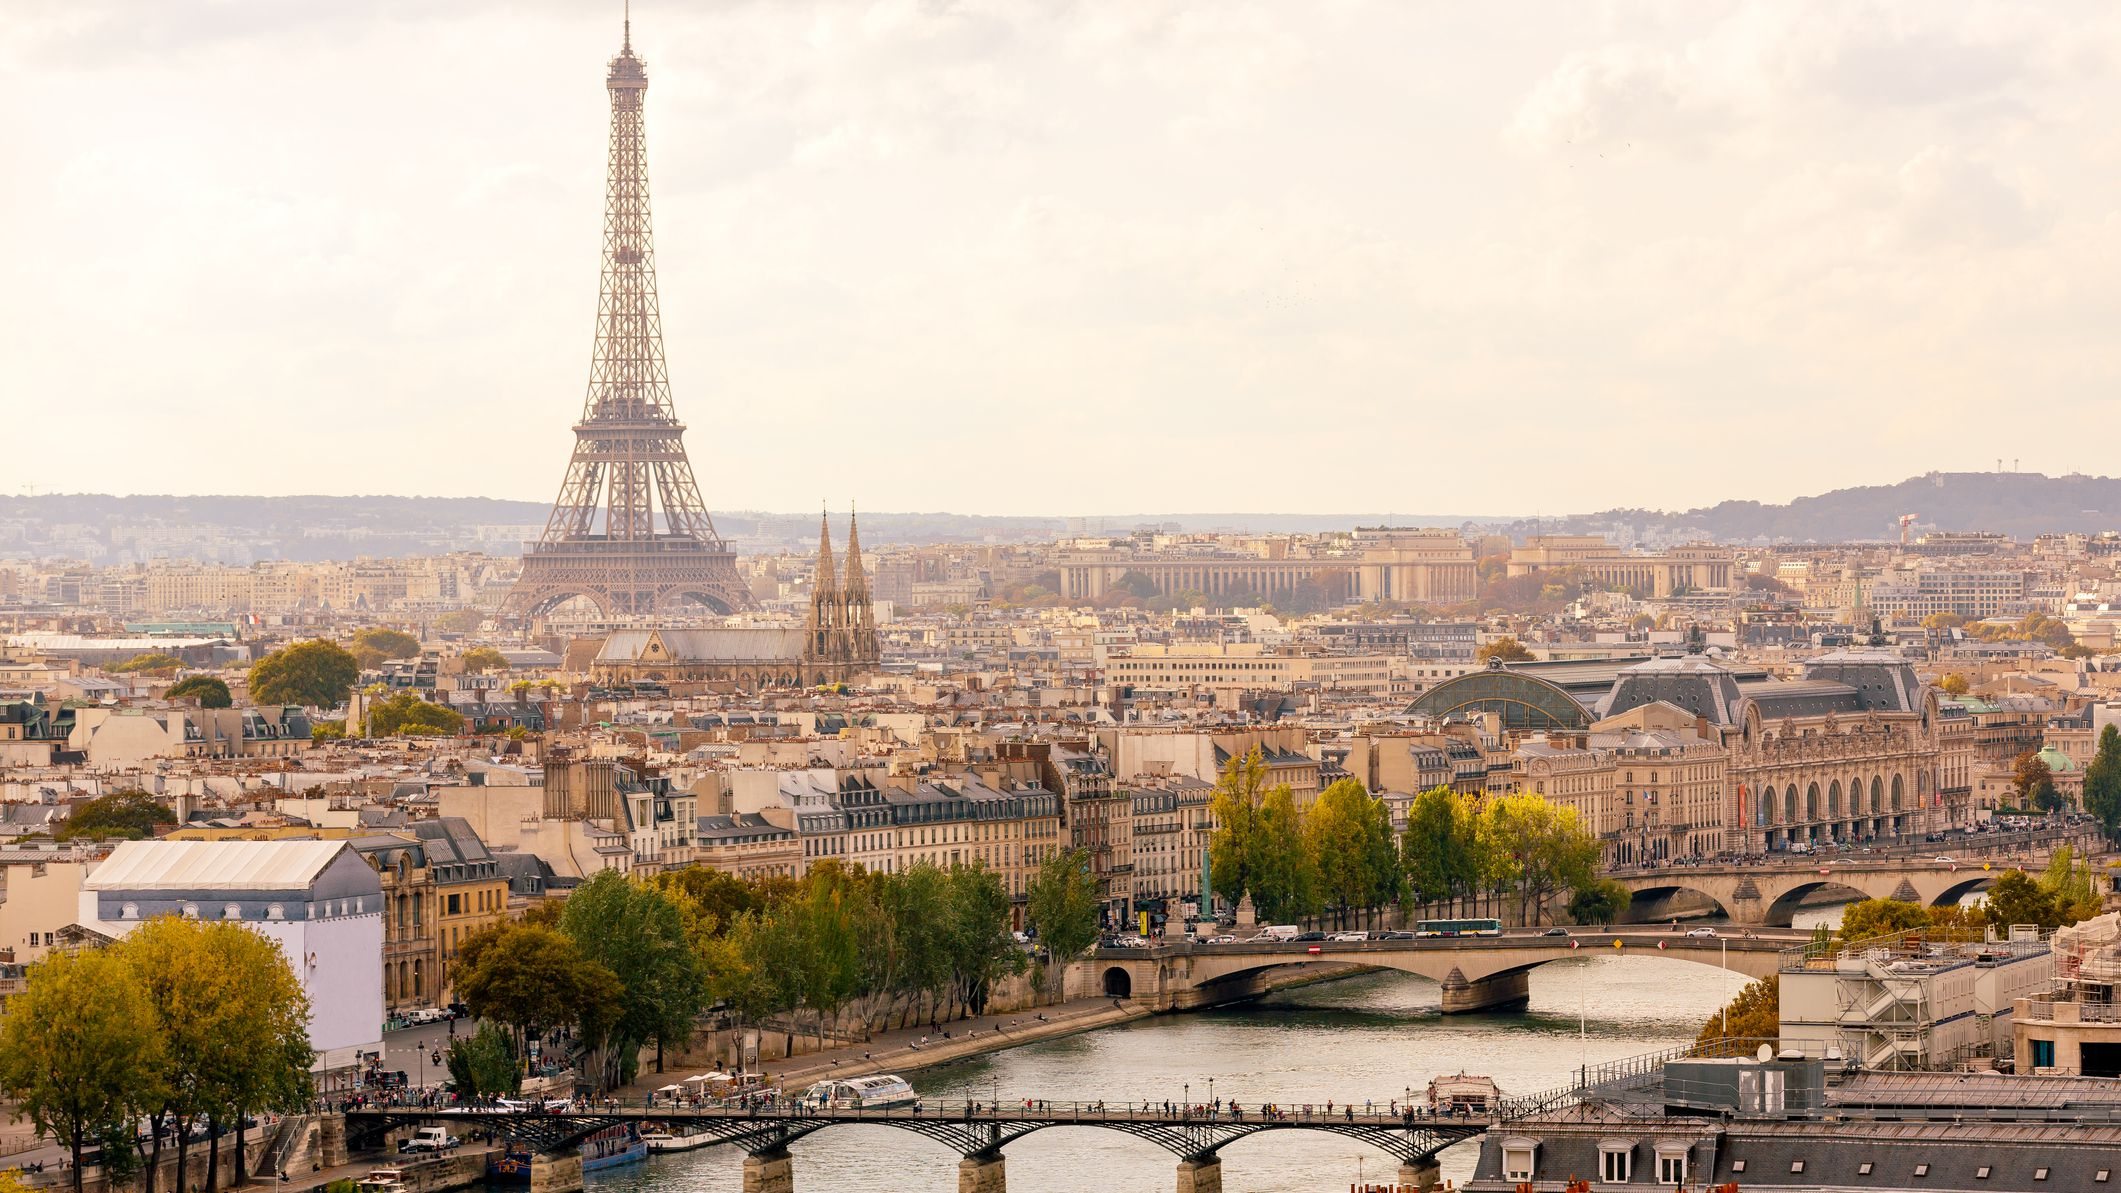 How to Get From Charles de Gaulle Airport to Paris